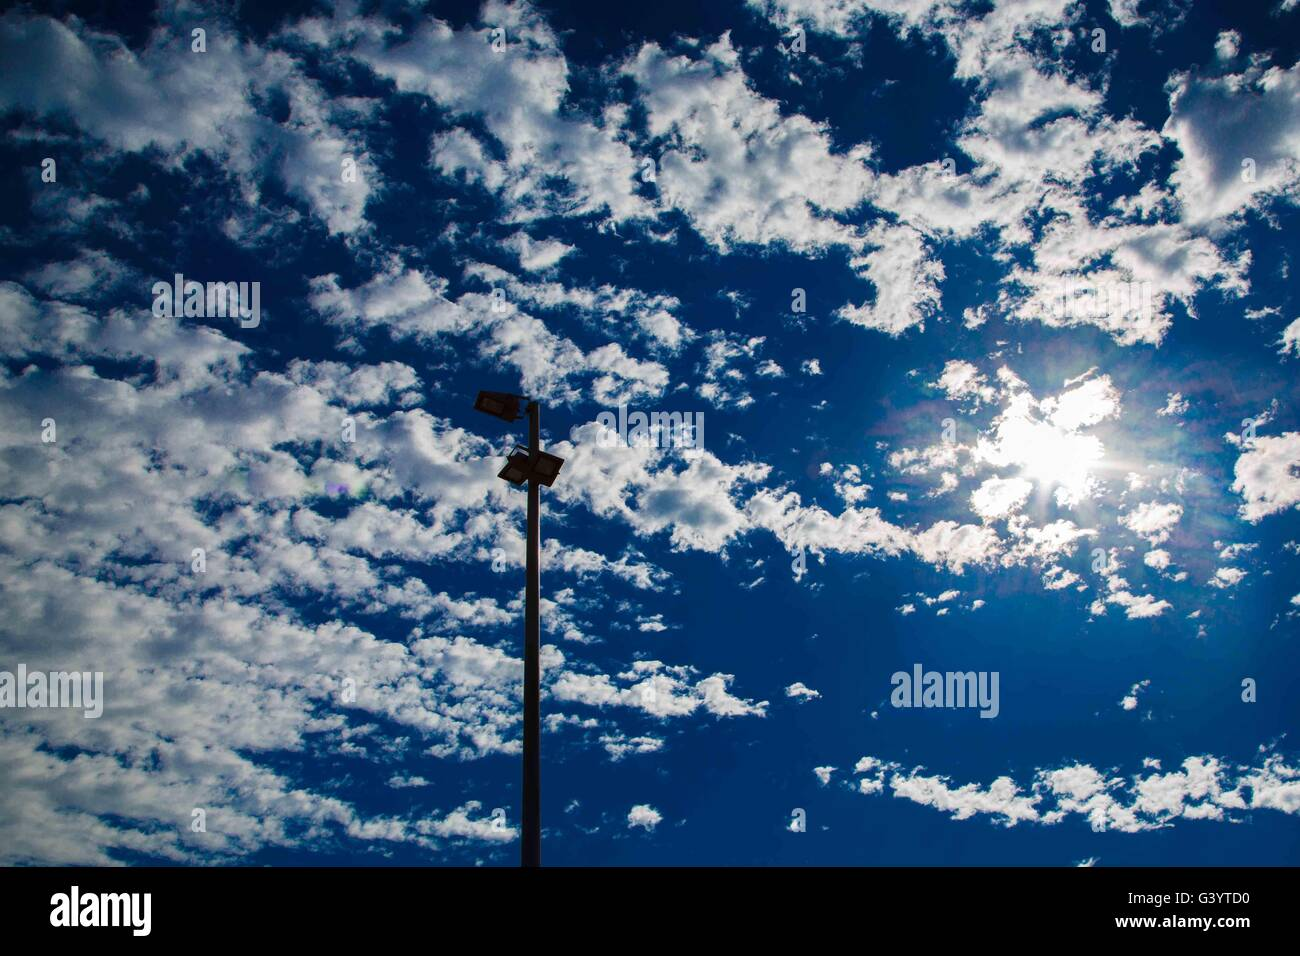 deep Blue sky with white fluffy clouds and a single street light - Stock Image